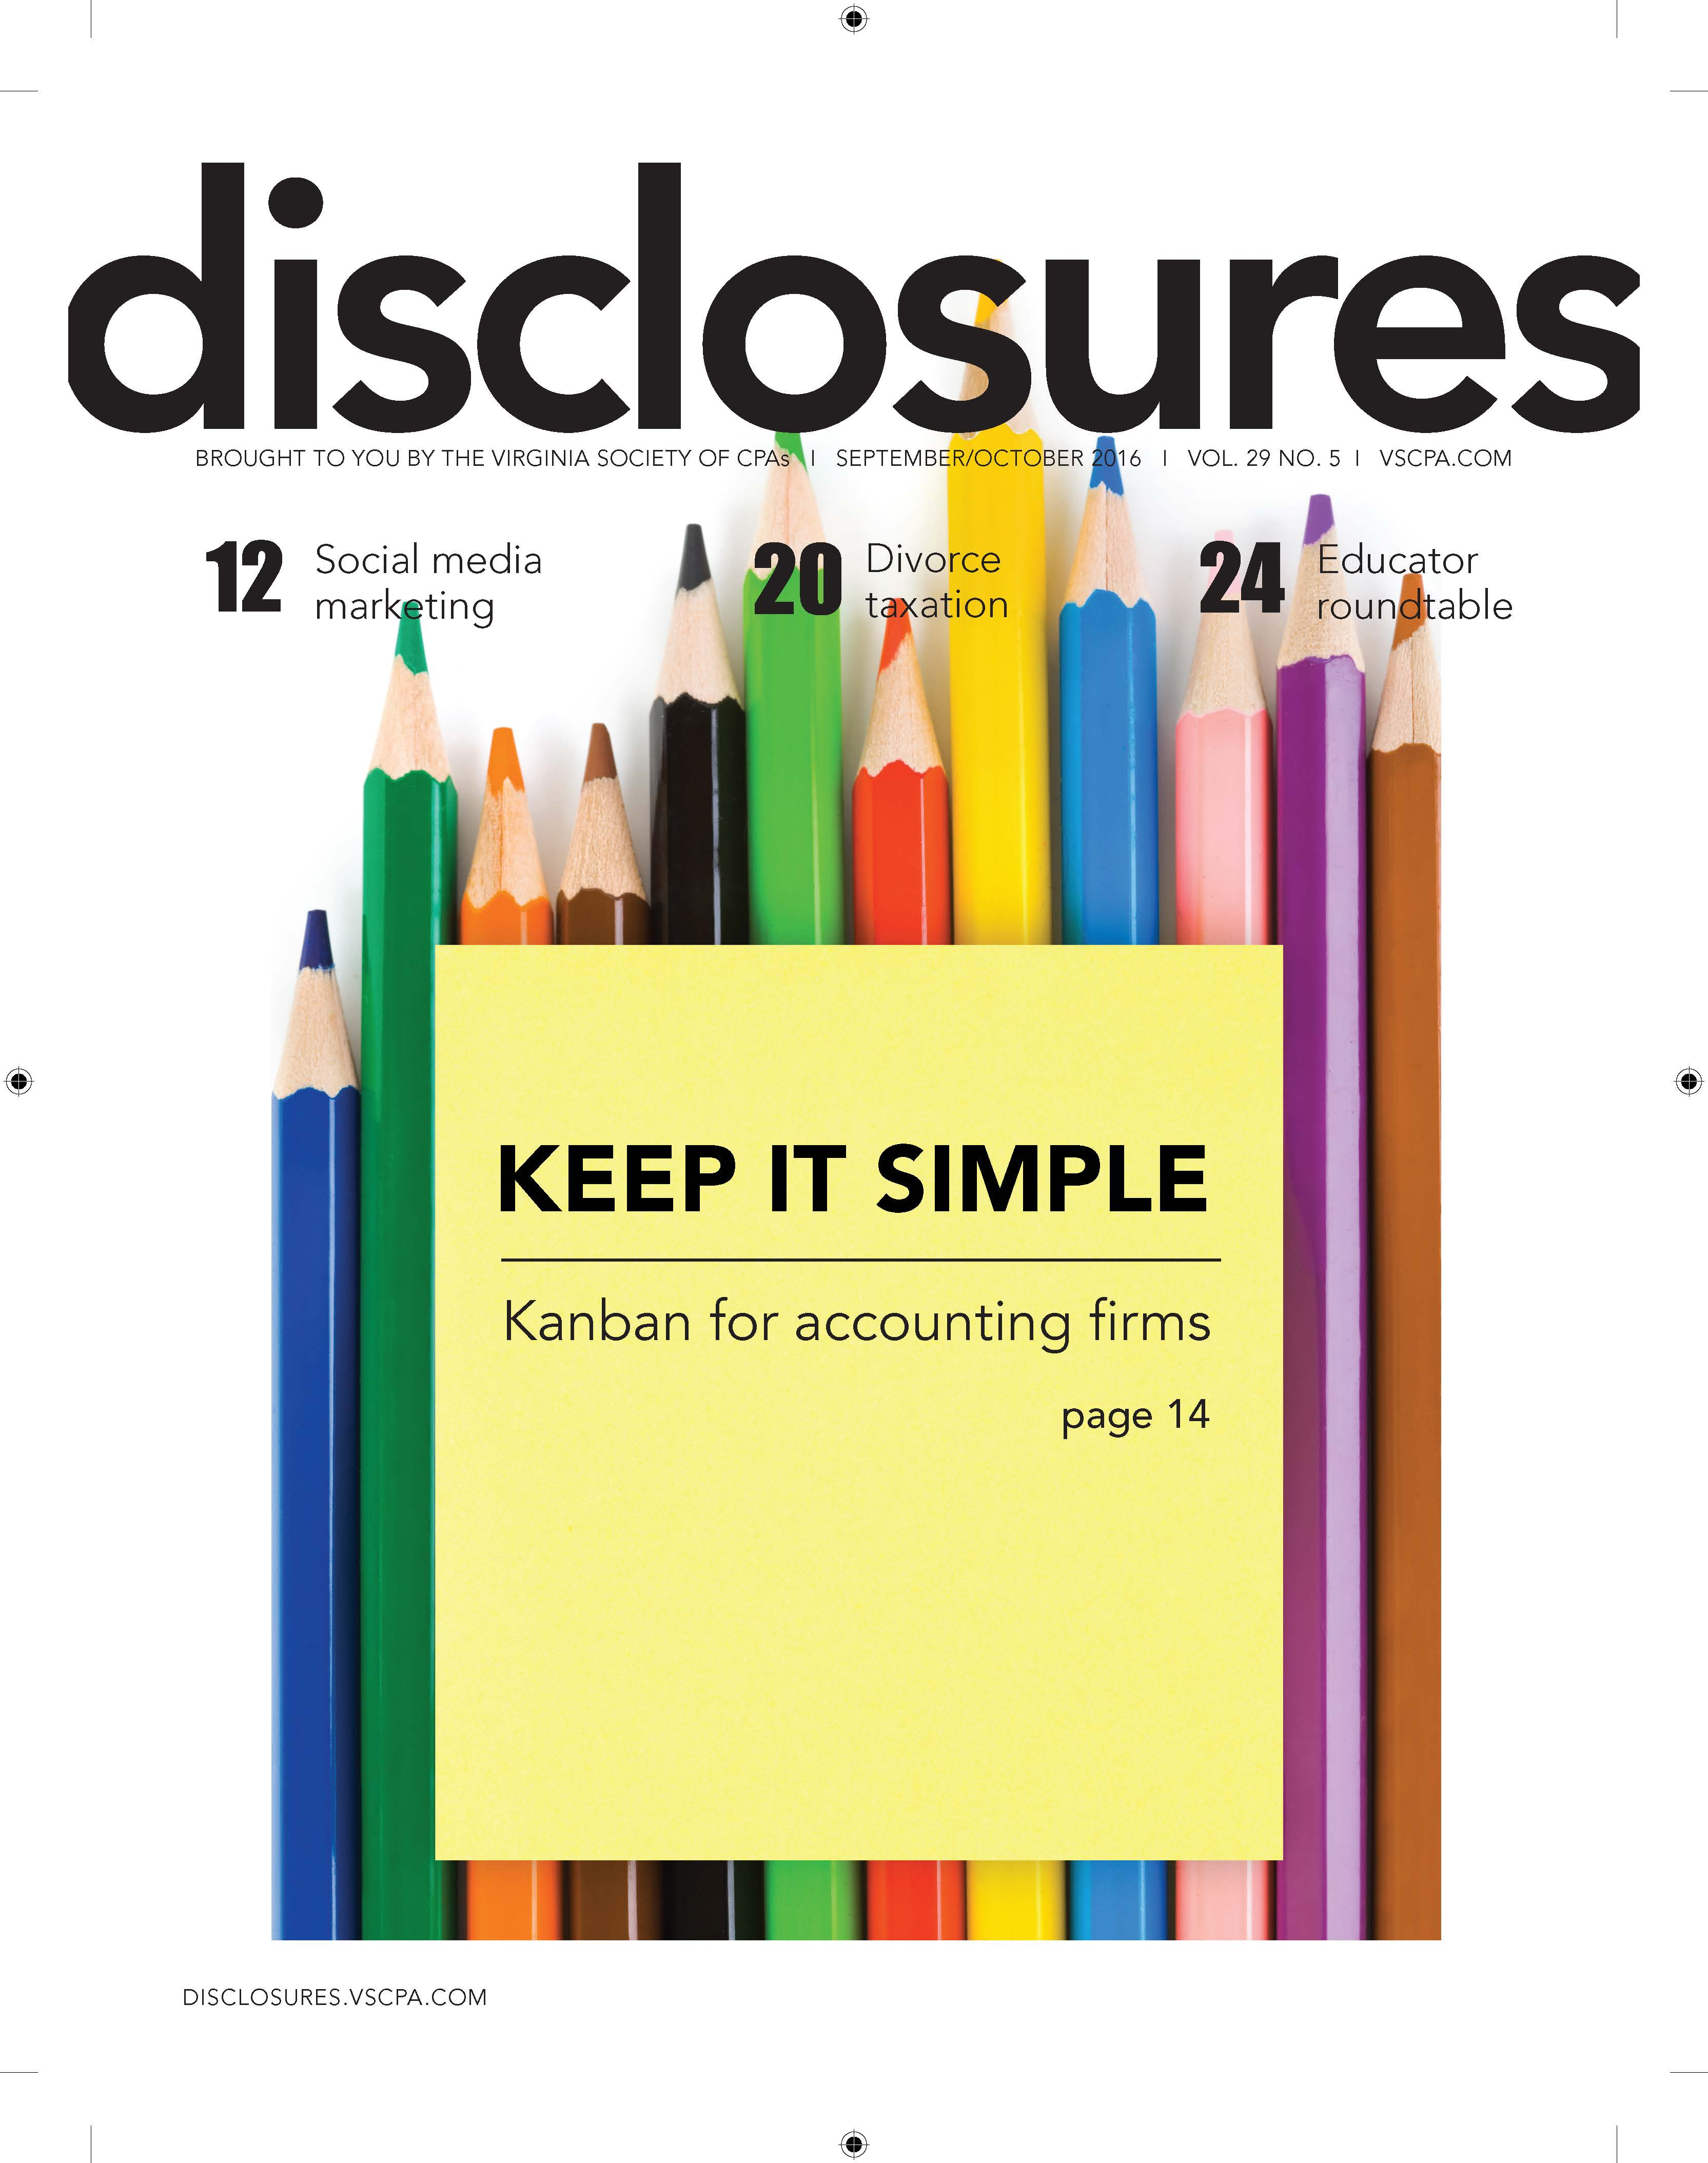 Cover of September/October 2016 issue of Disclosures